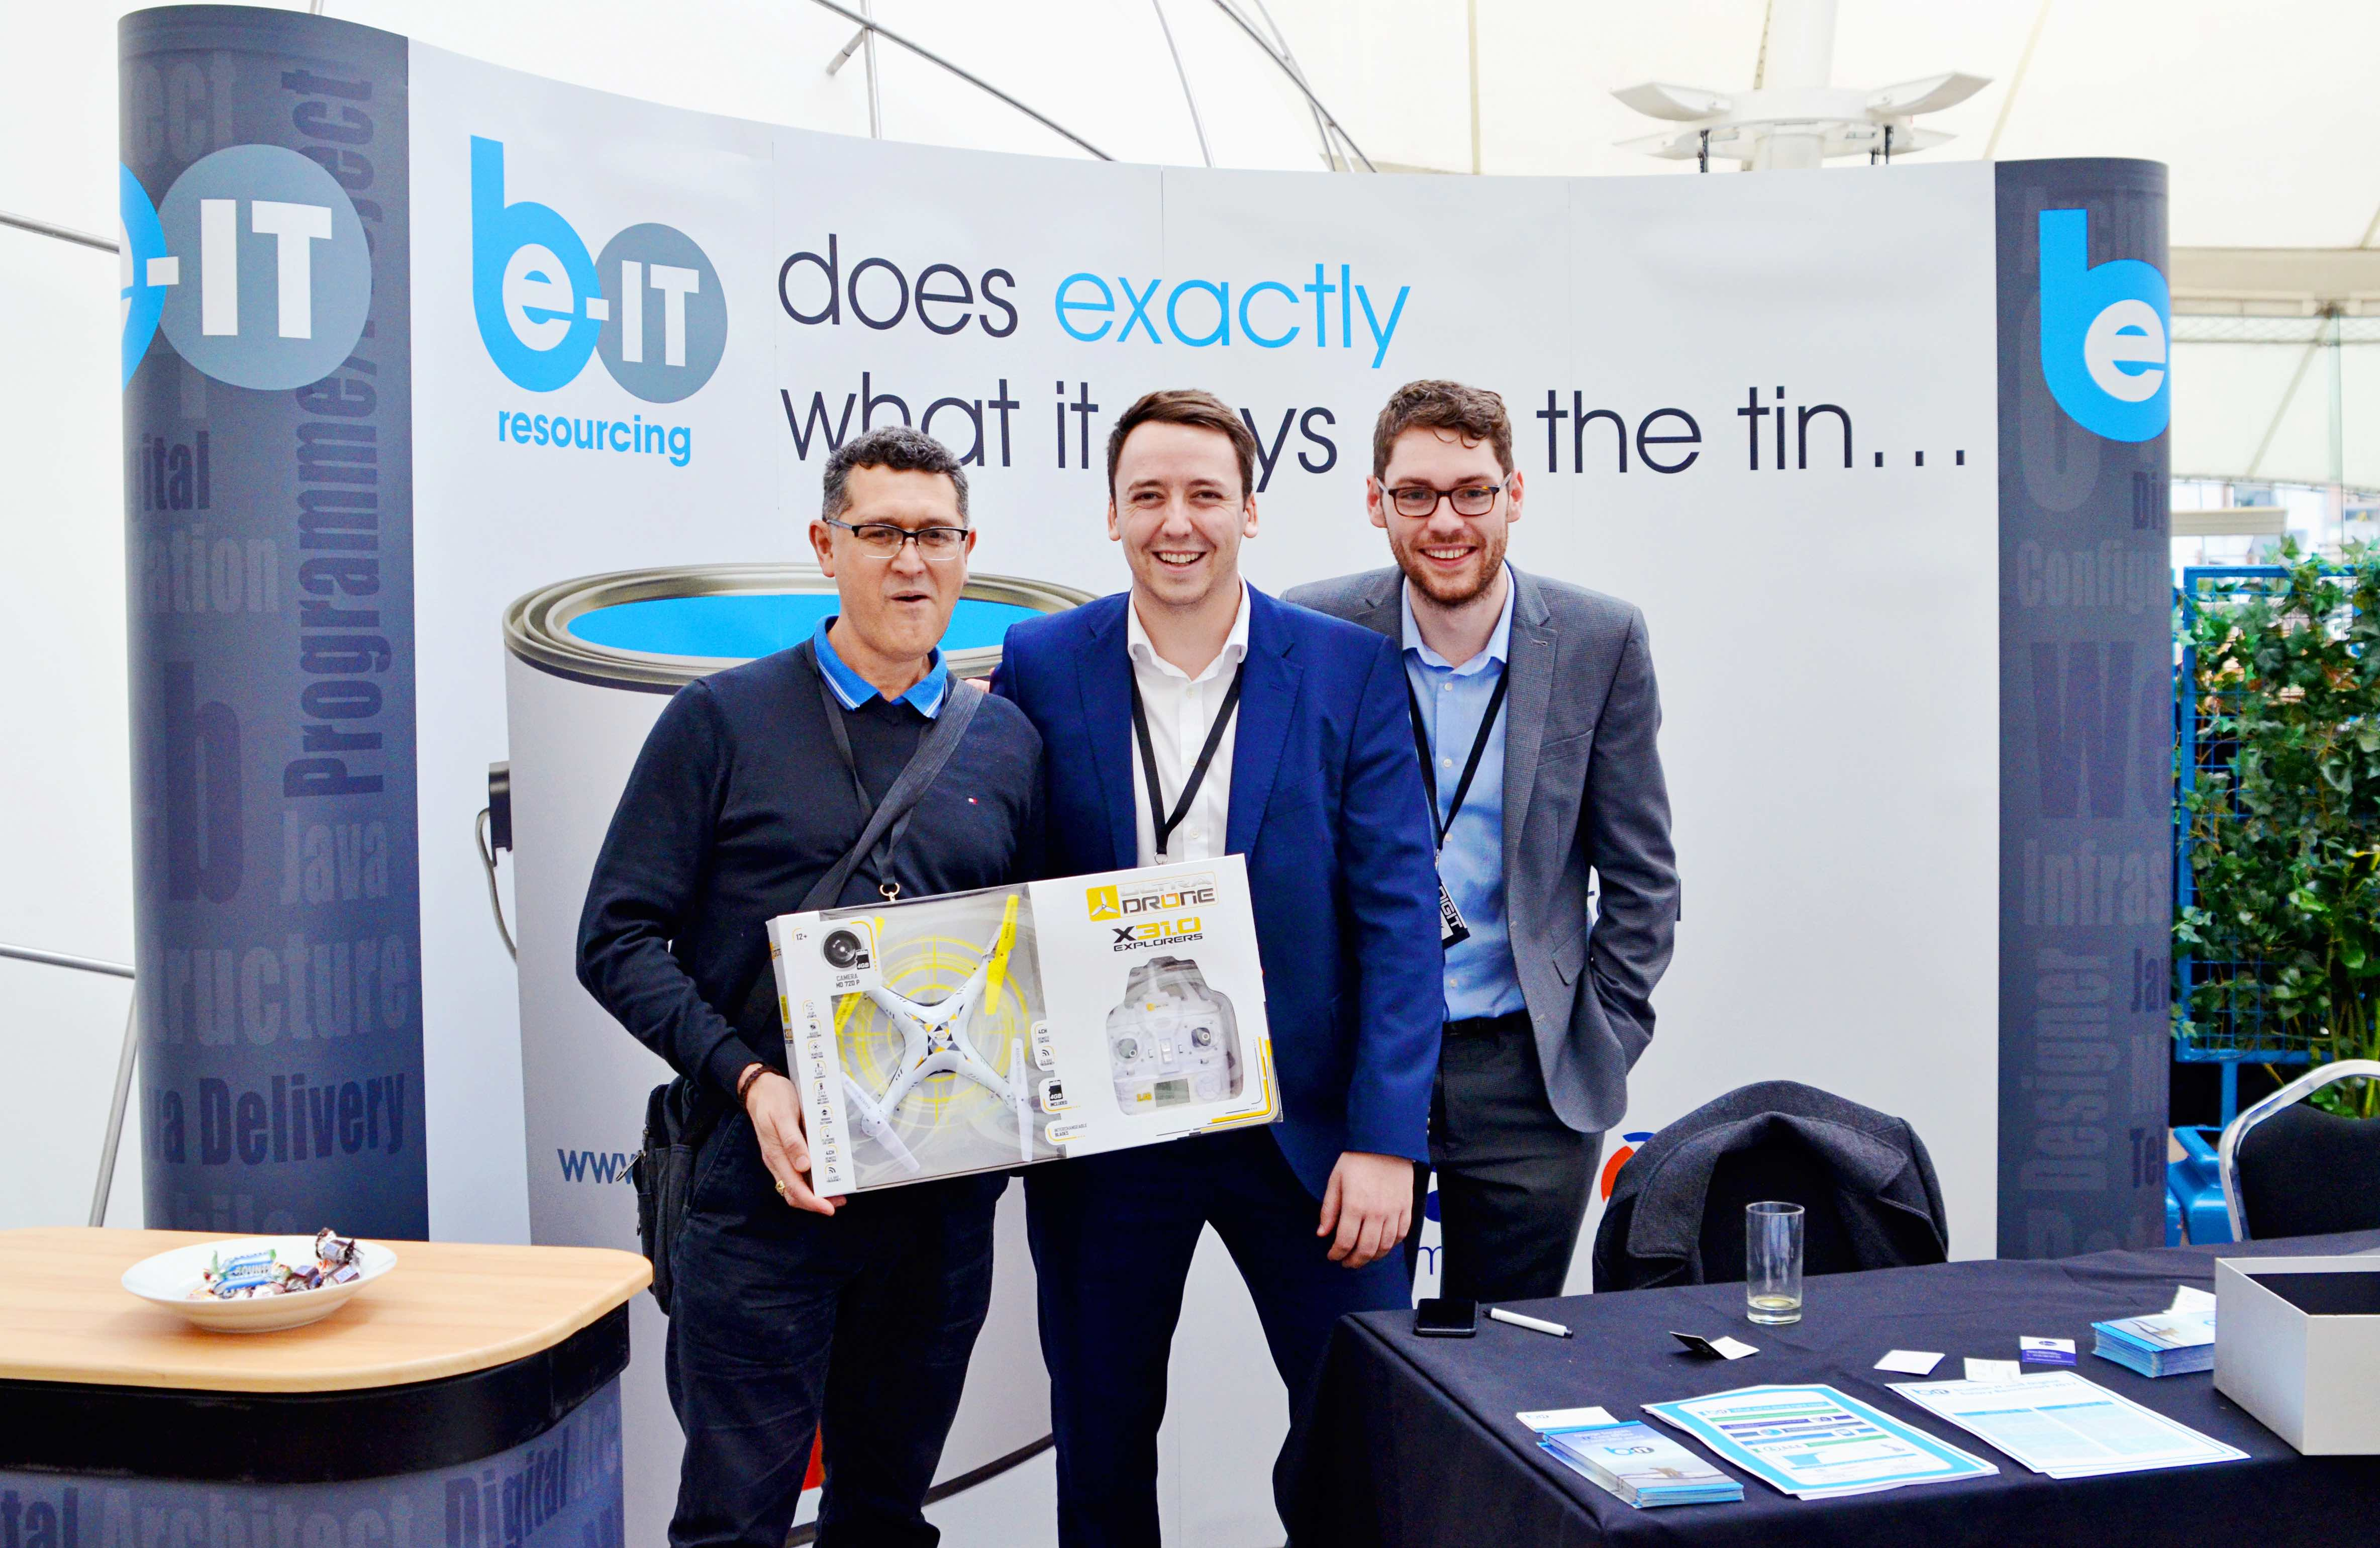 Digital Transformation Conference, Be-IT Drone winner